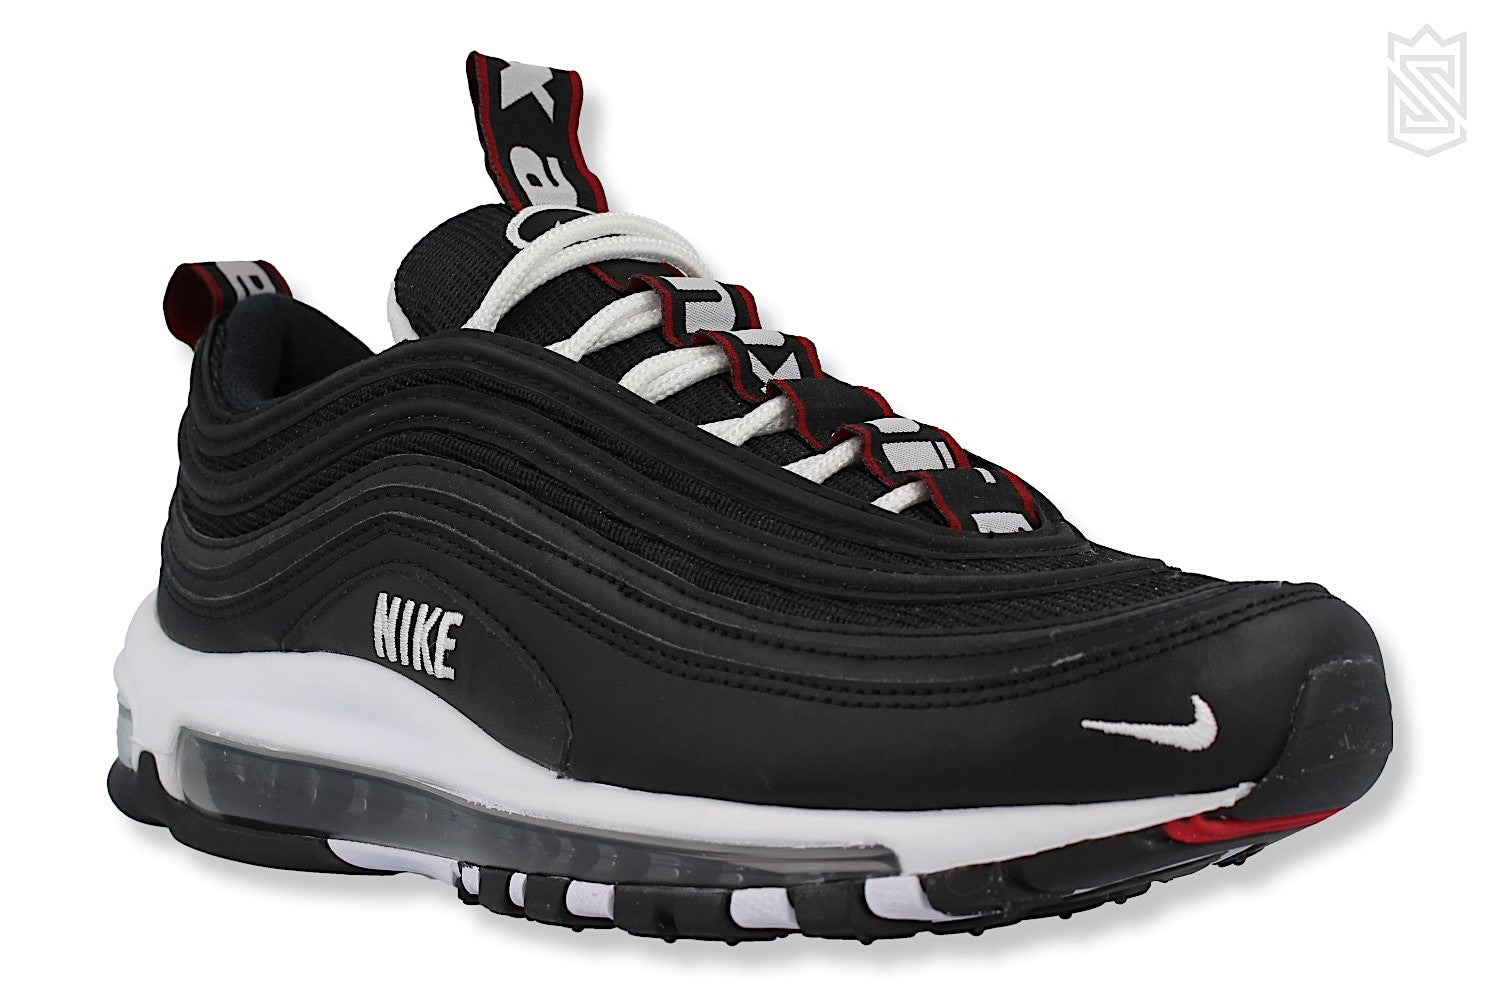 where can i buy nike air max 97 rot schwarz 7d237 3fc77